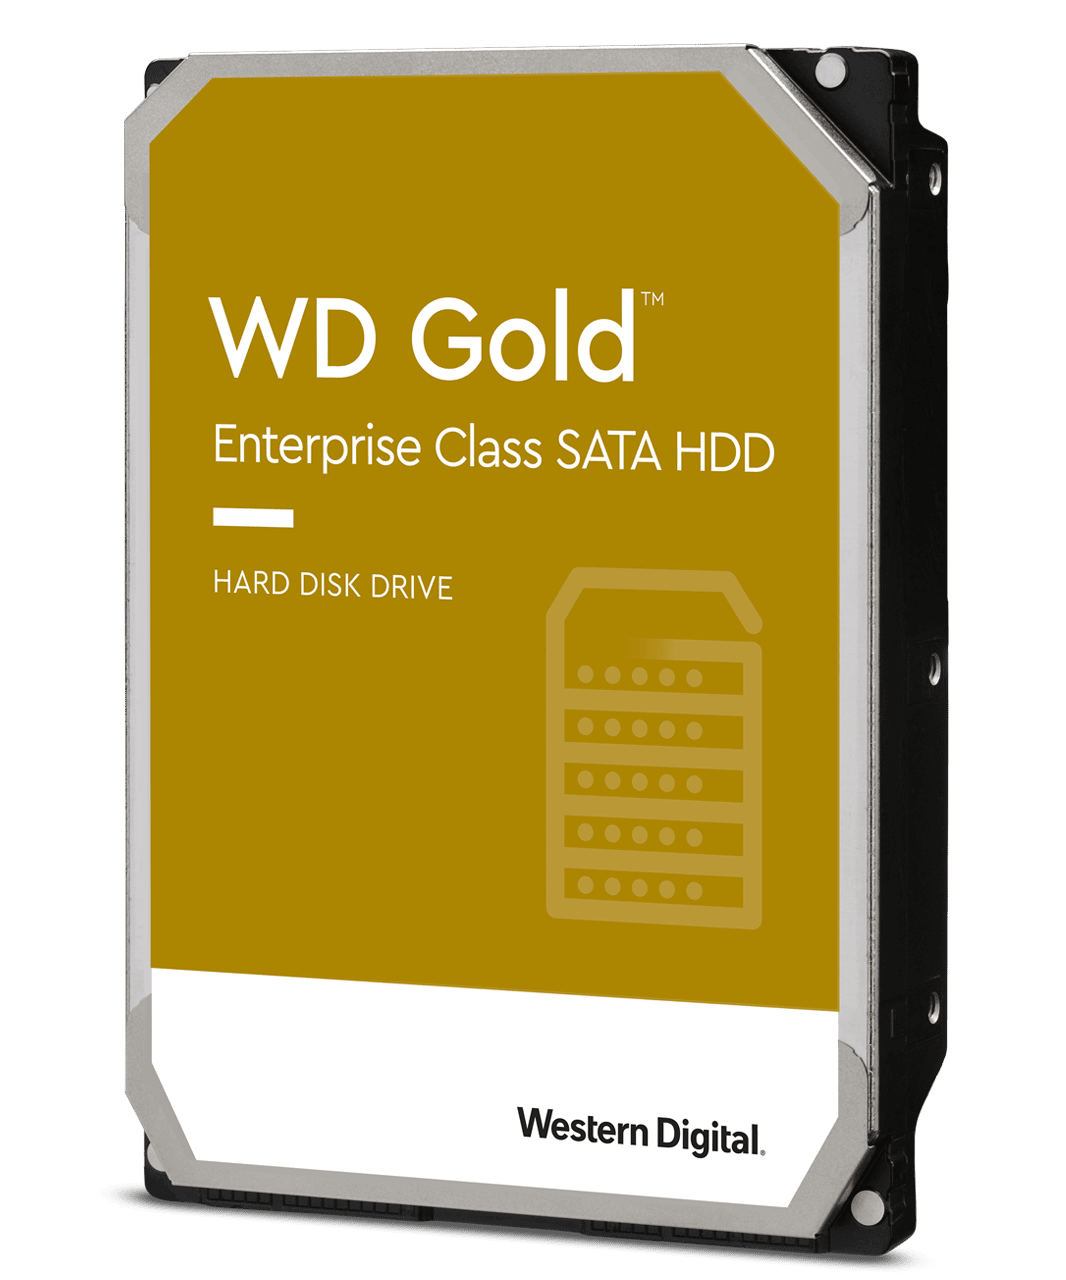 product-hero-image-wd-gold-hdd-western-digital-main